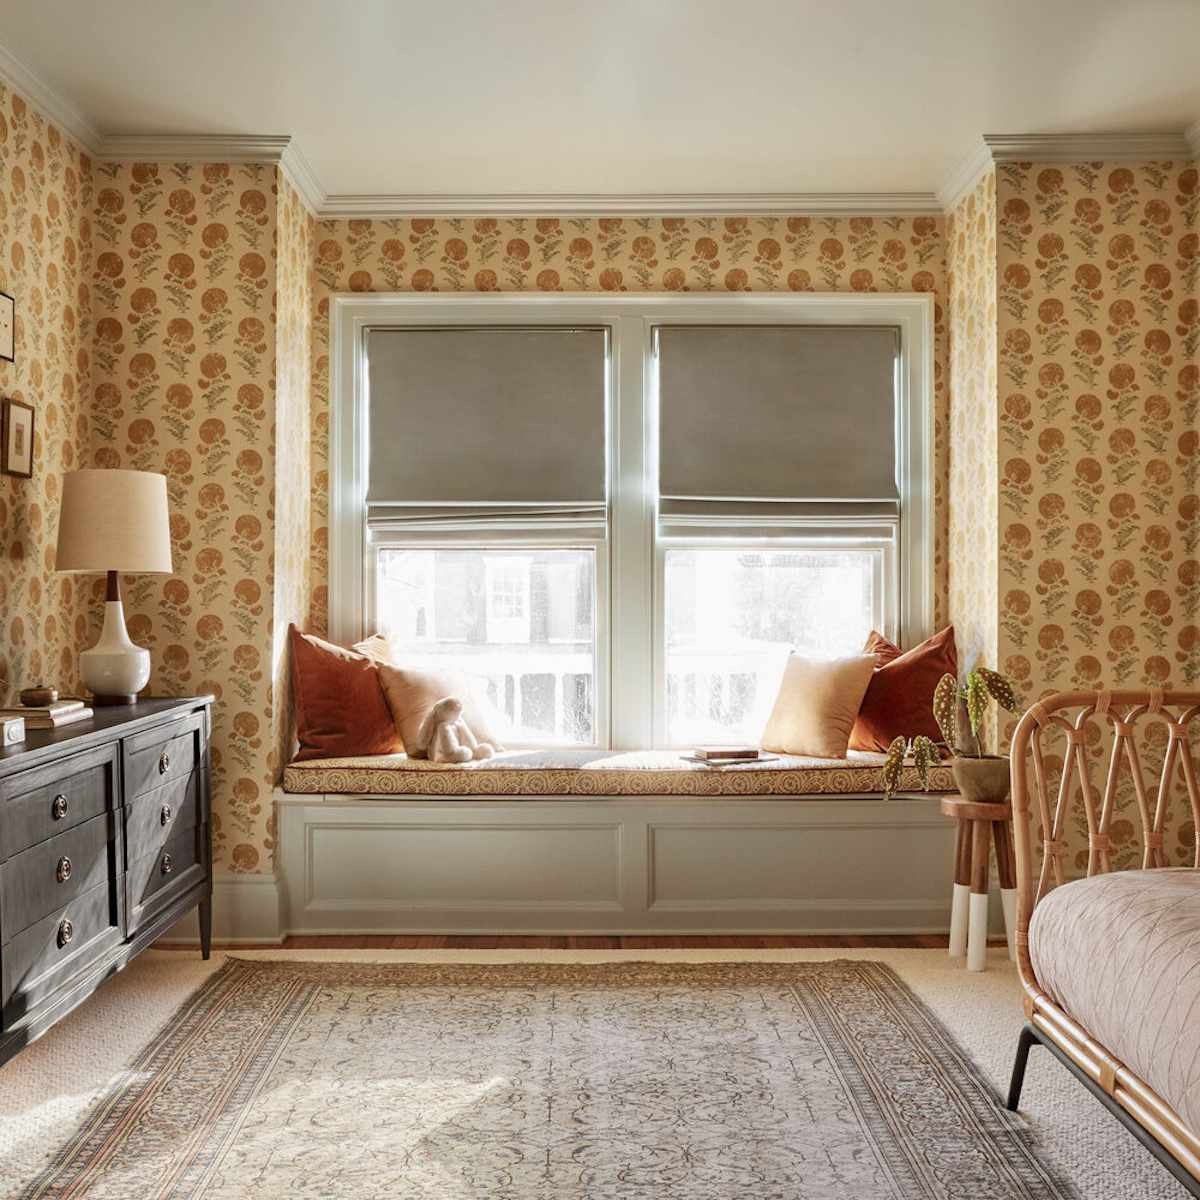 traditional, vintage style bedroom with yellow floral walls, wicker and wood furniture